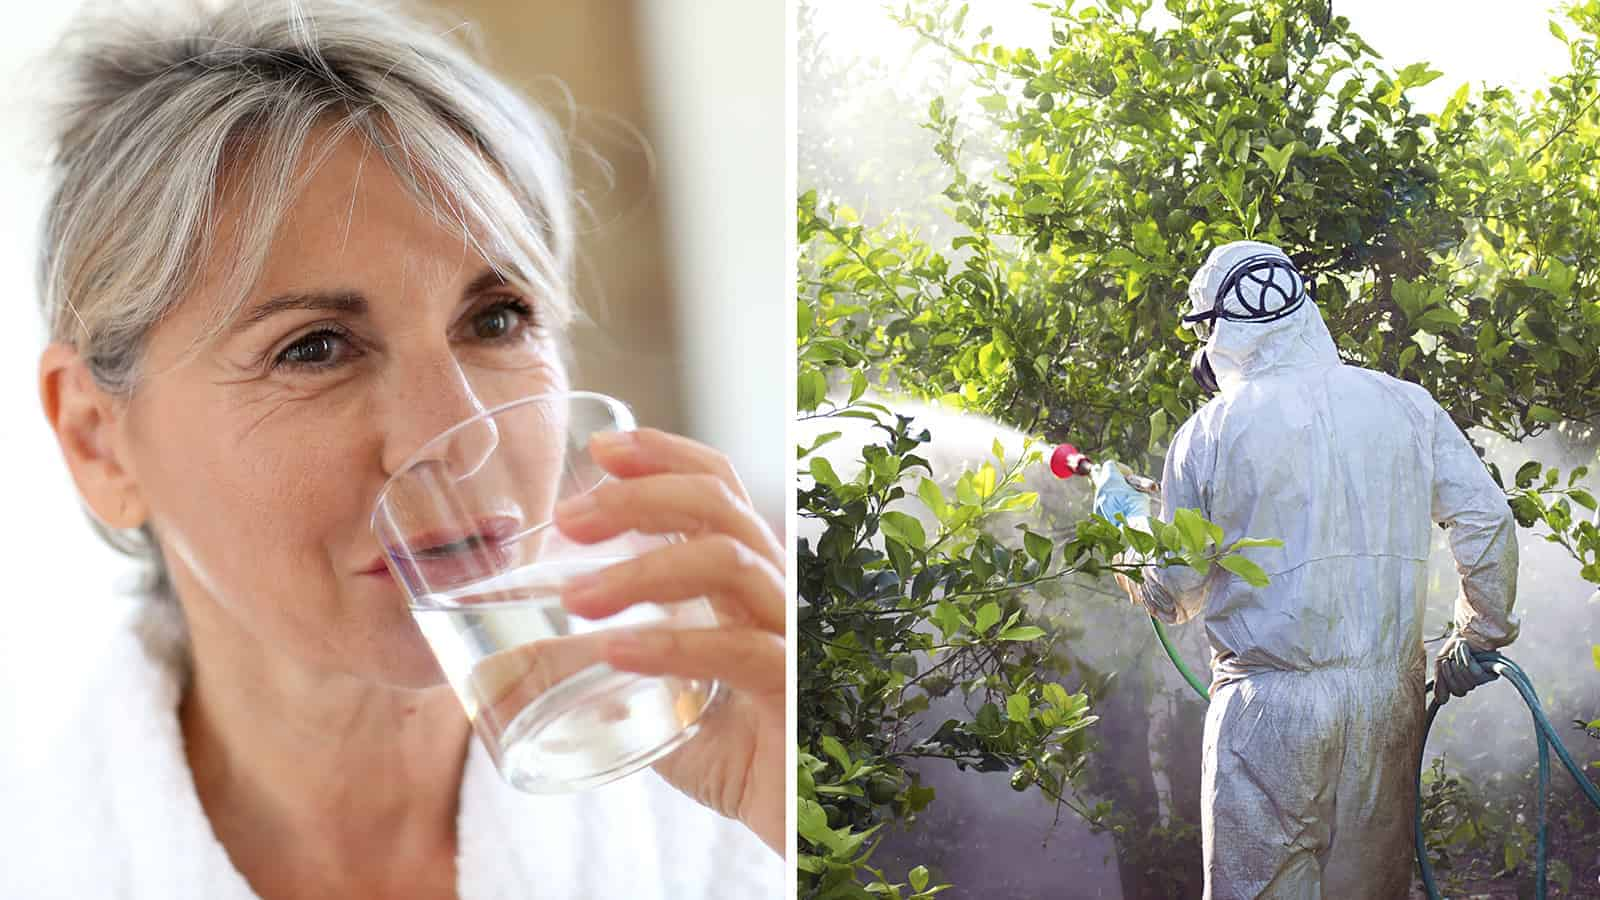 pesticides in water